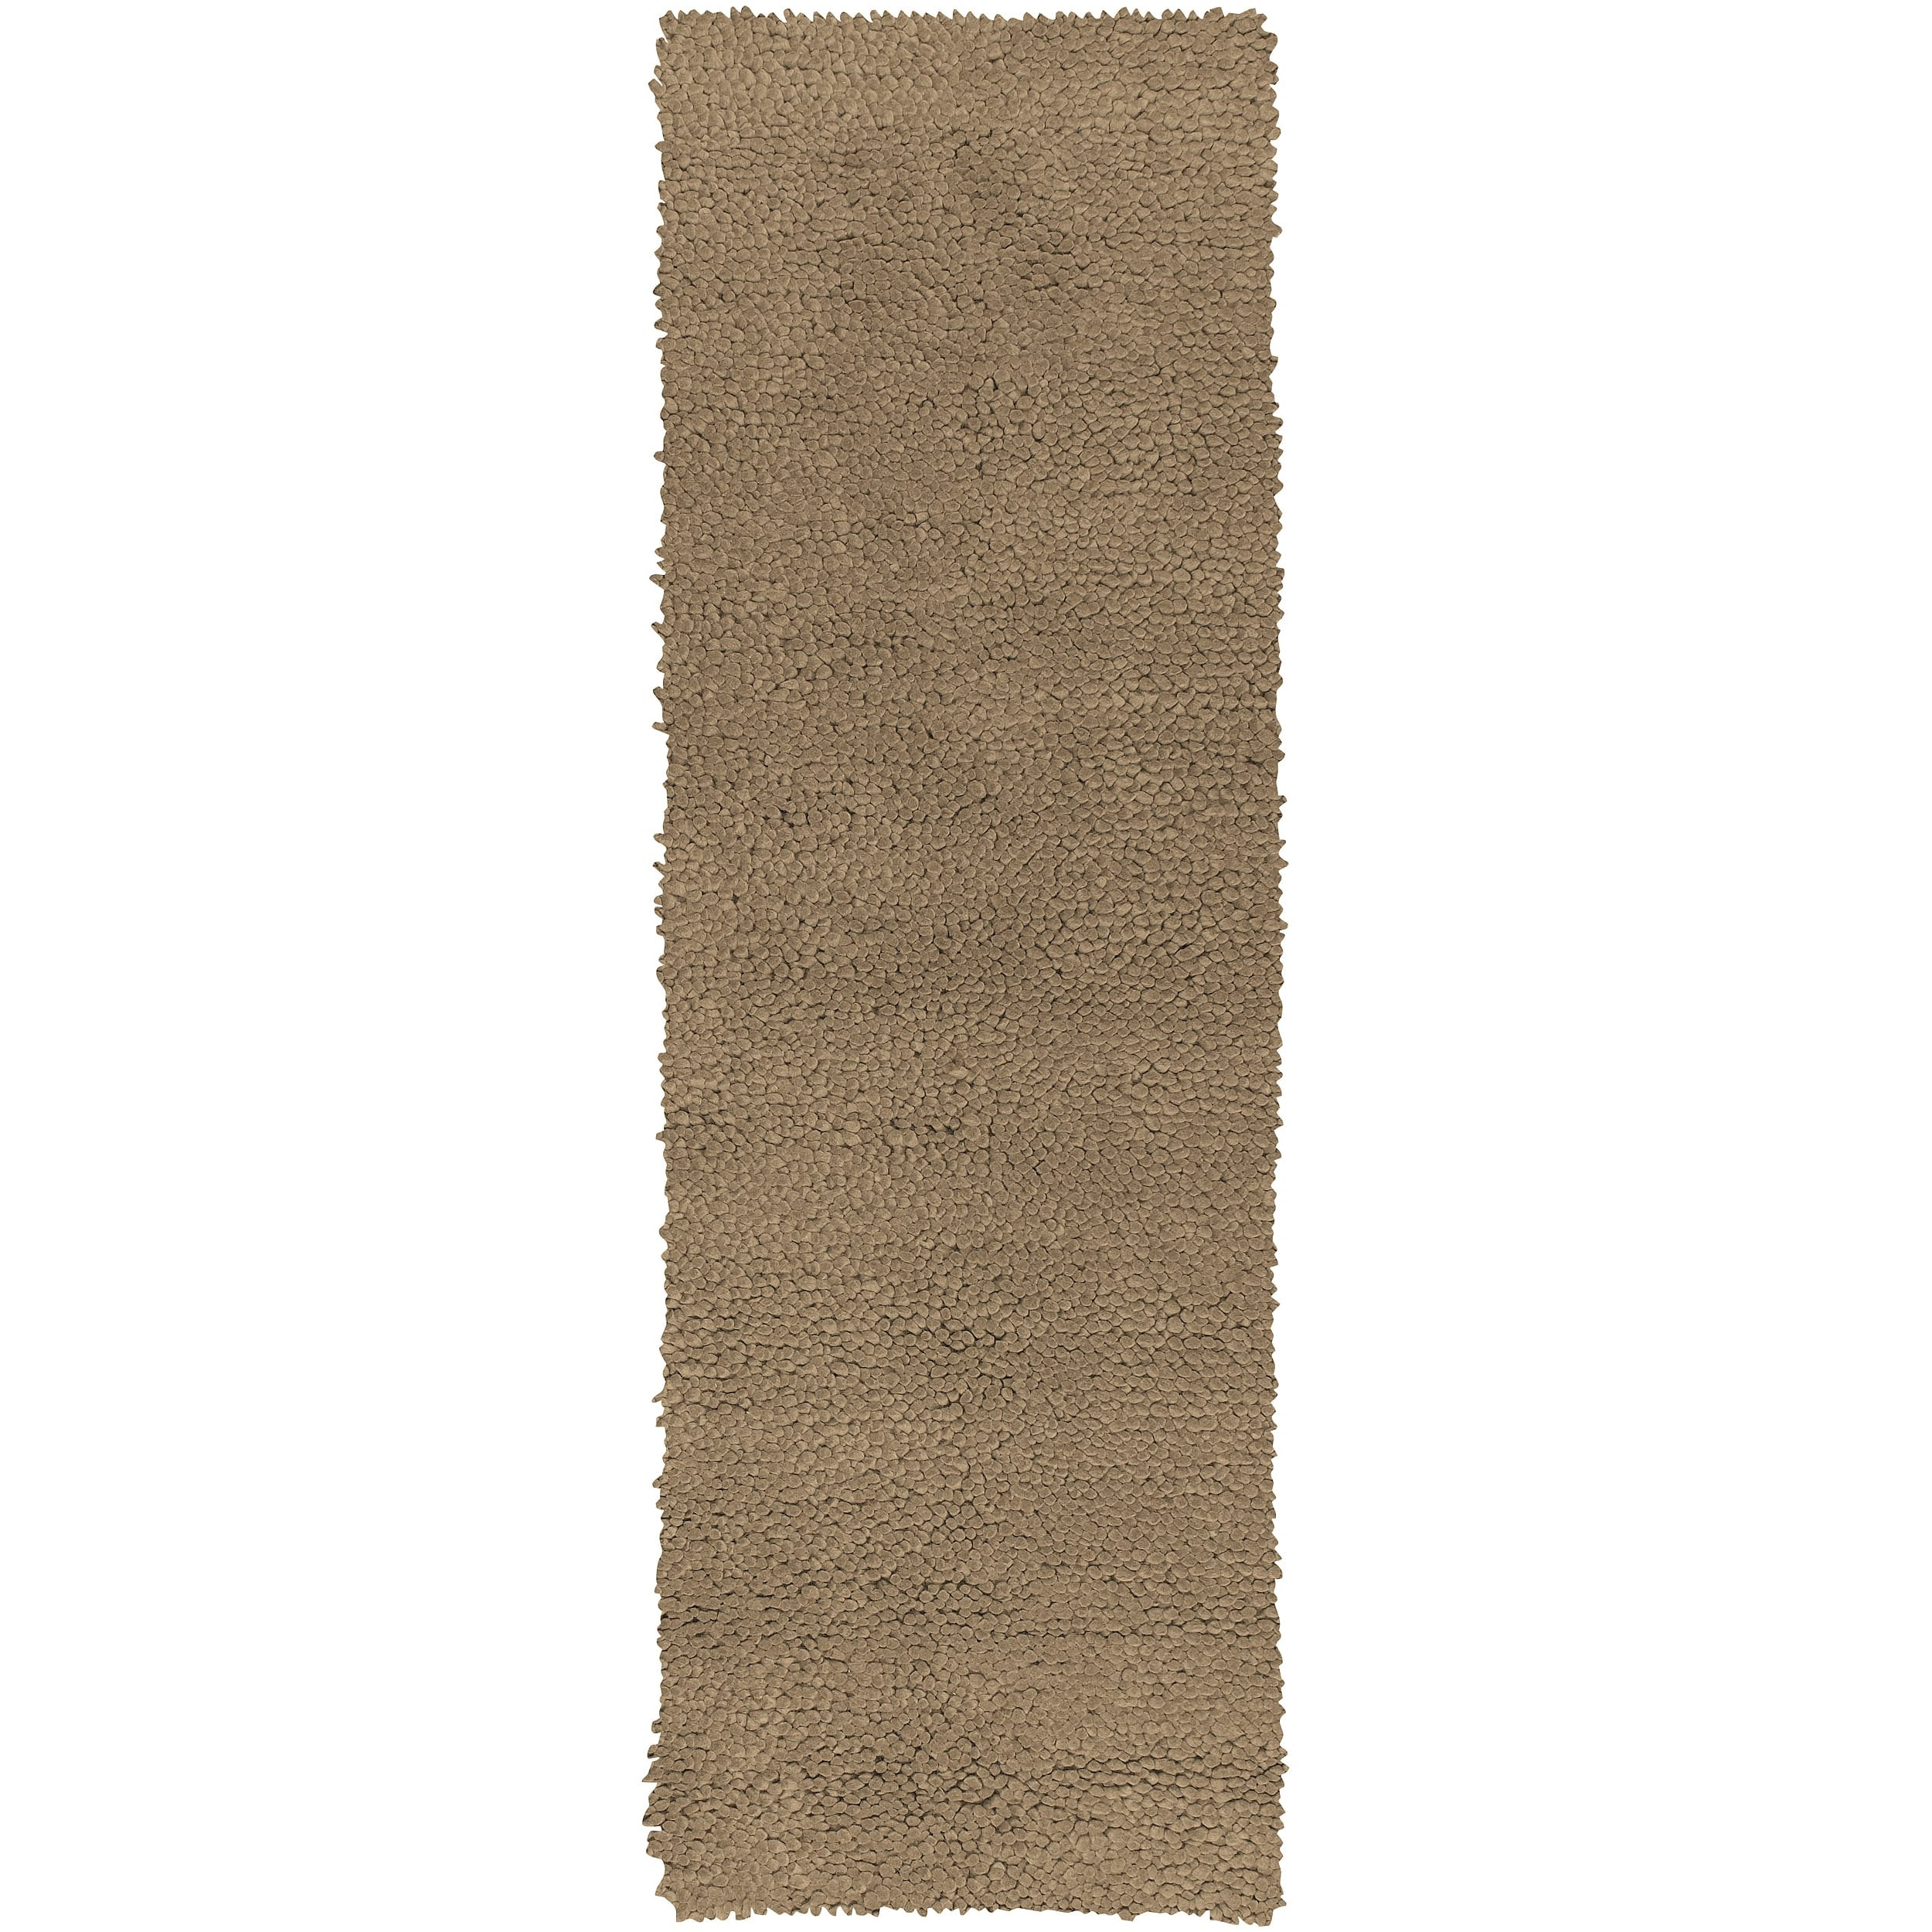 4 X 10 Rugs Area Rugs Shop The Best Deals For Sep 2017 Within Hallway Runners 12 Feet (#5 of 20)